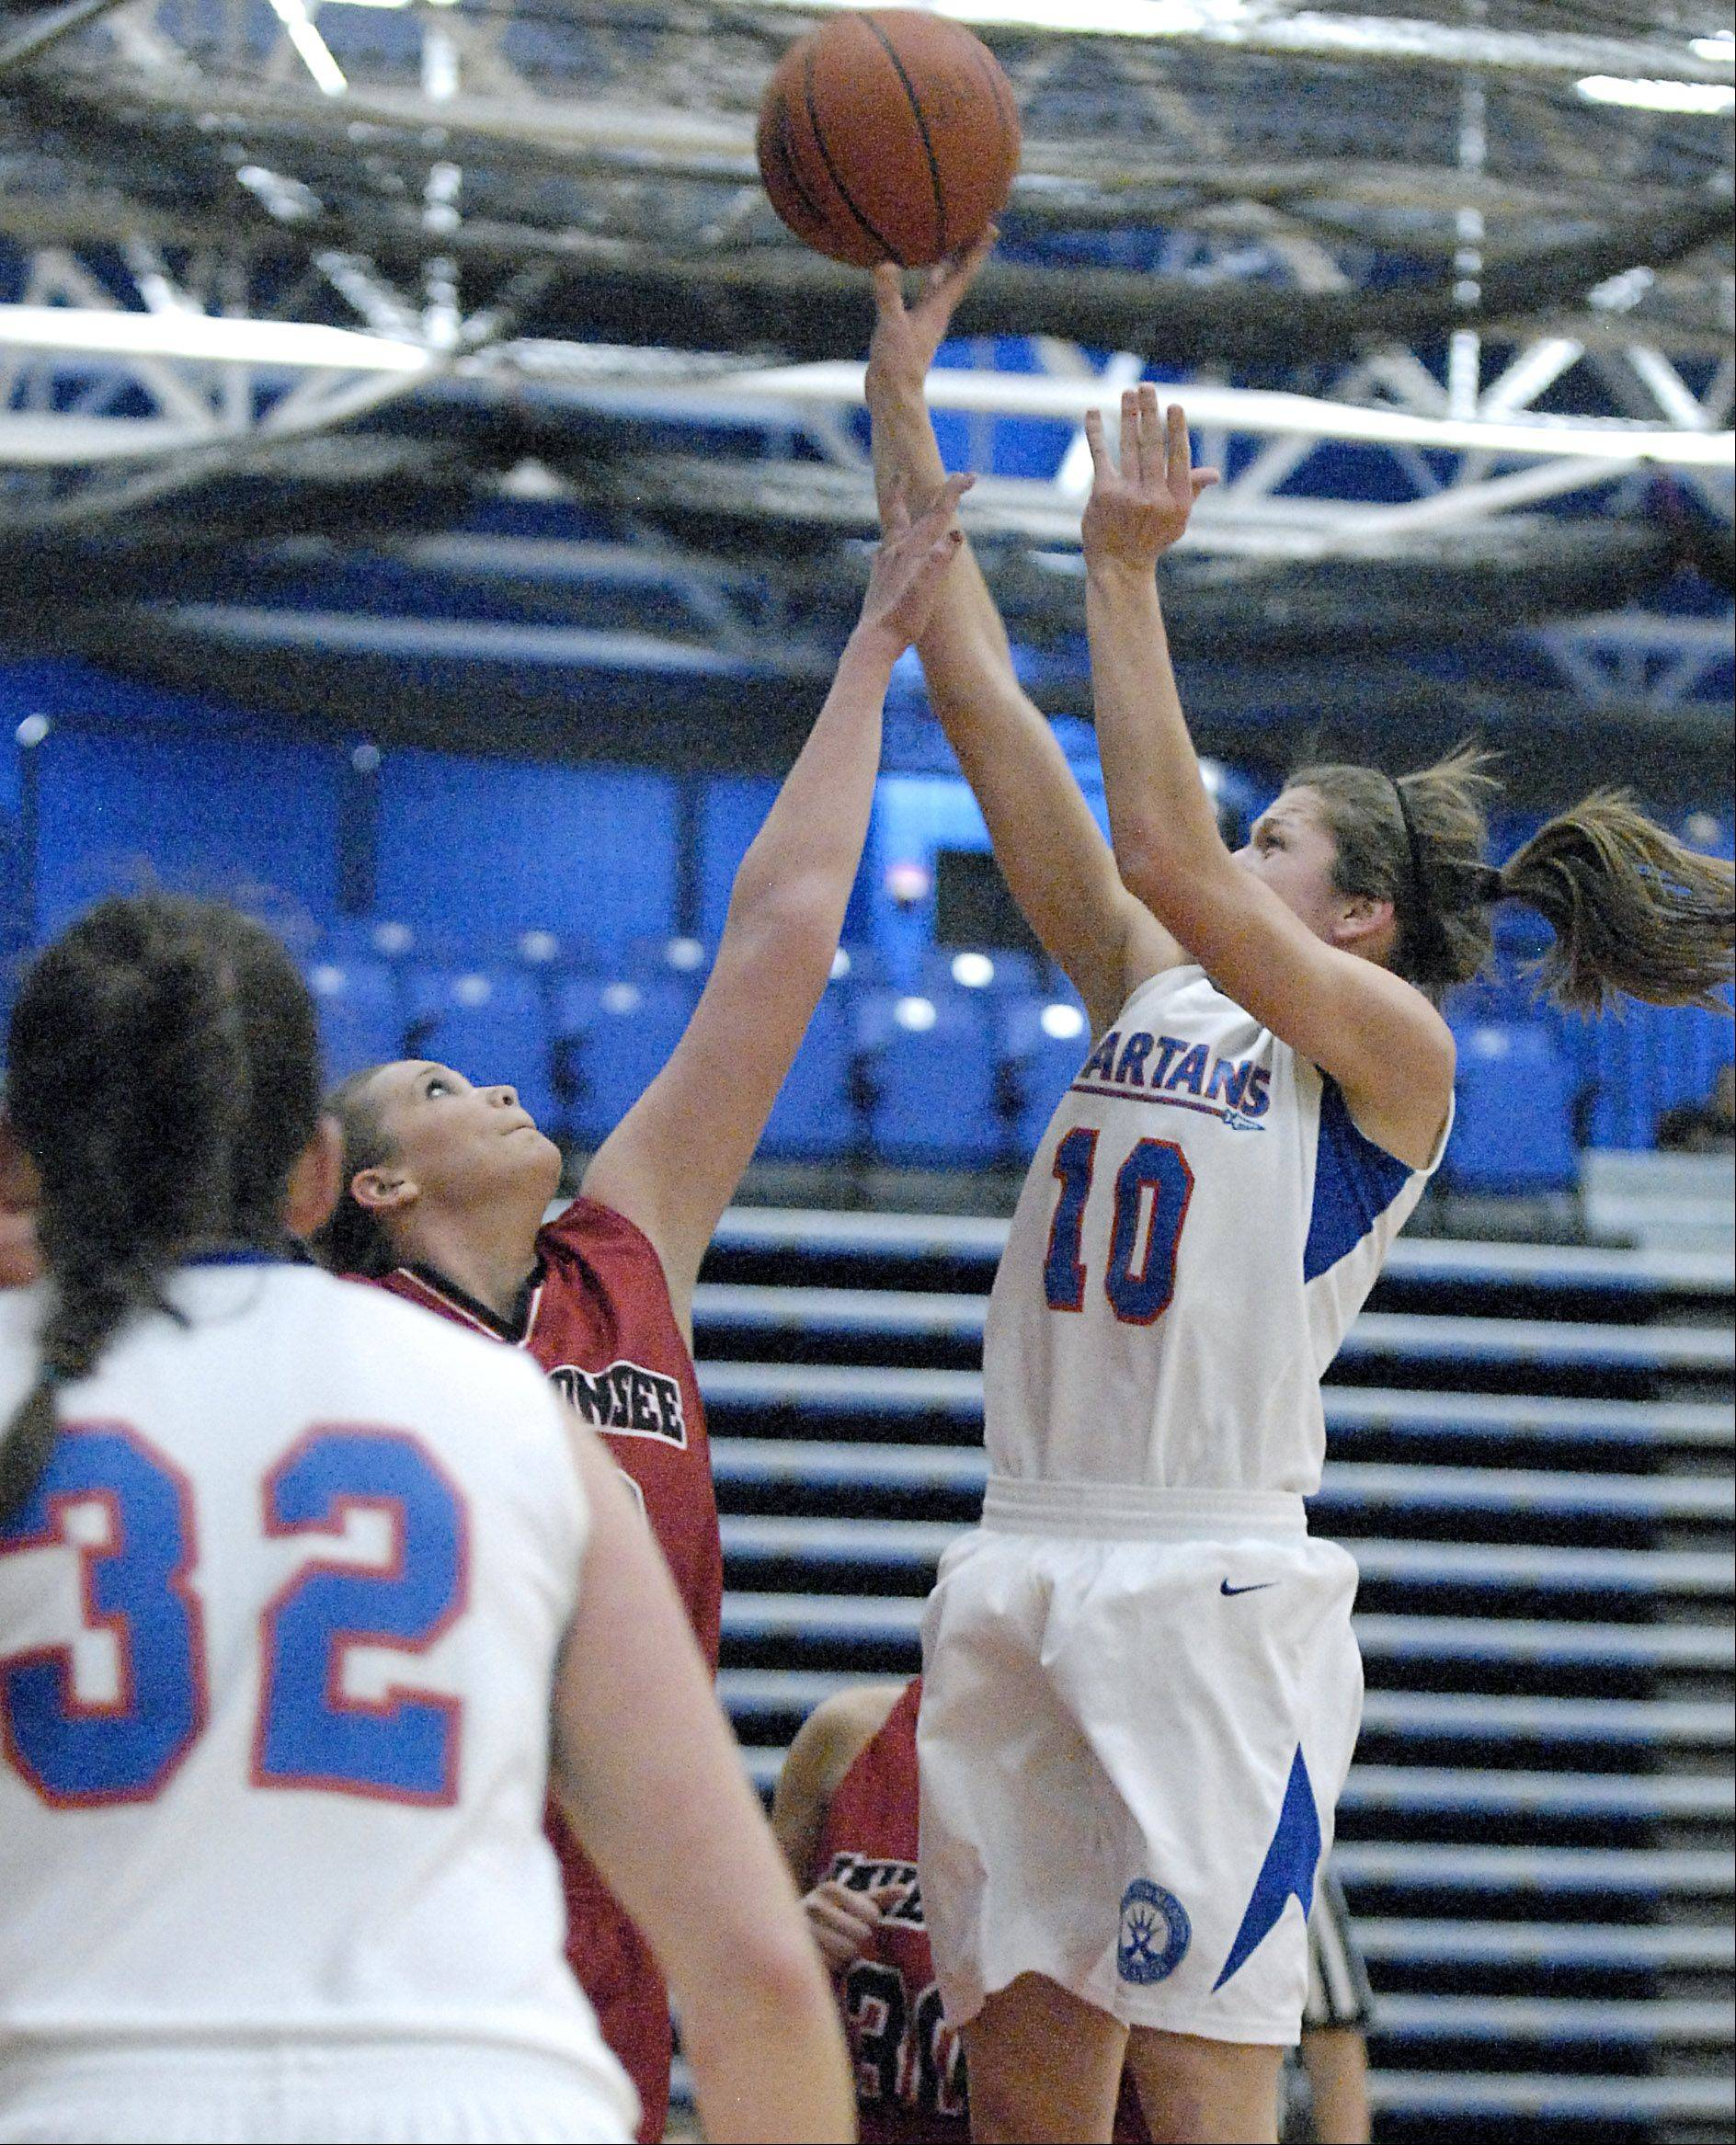 Elgin Community College's Cassie Dumoulin shoots over Waubonsee Community College's Colleen Purcell in the second half of Region IV playoffs on Thursday, March 1.